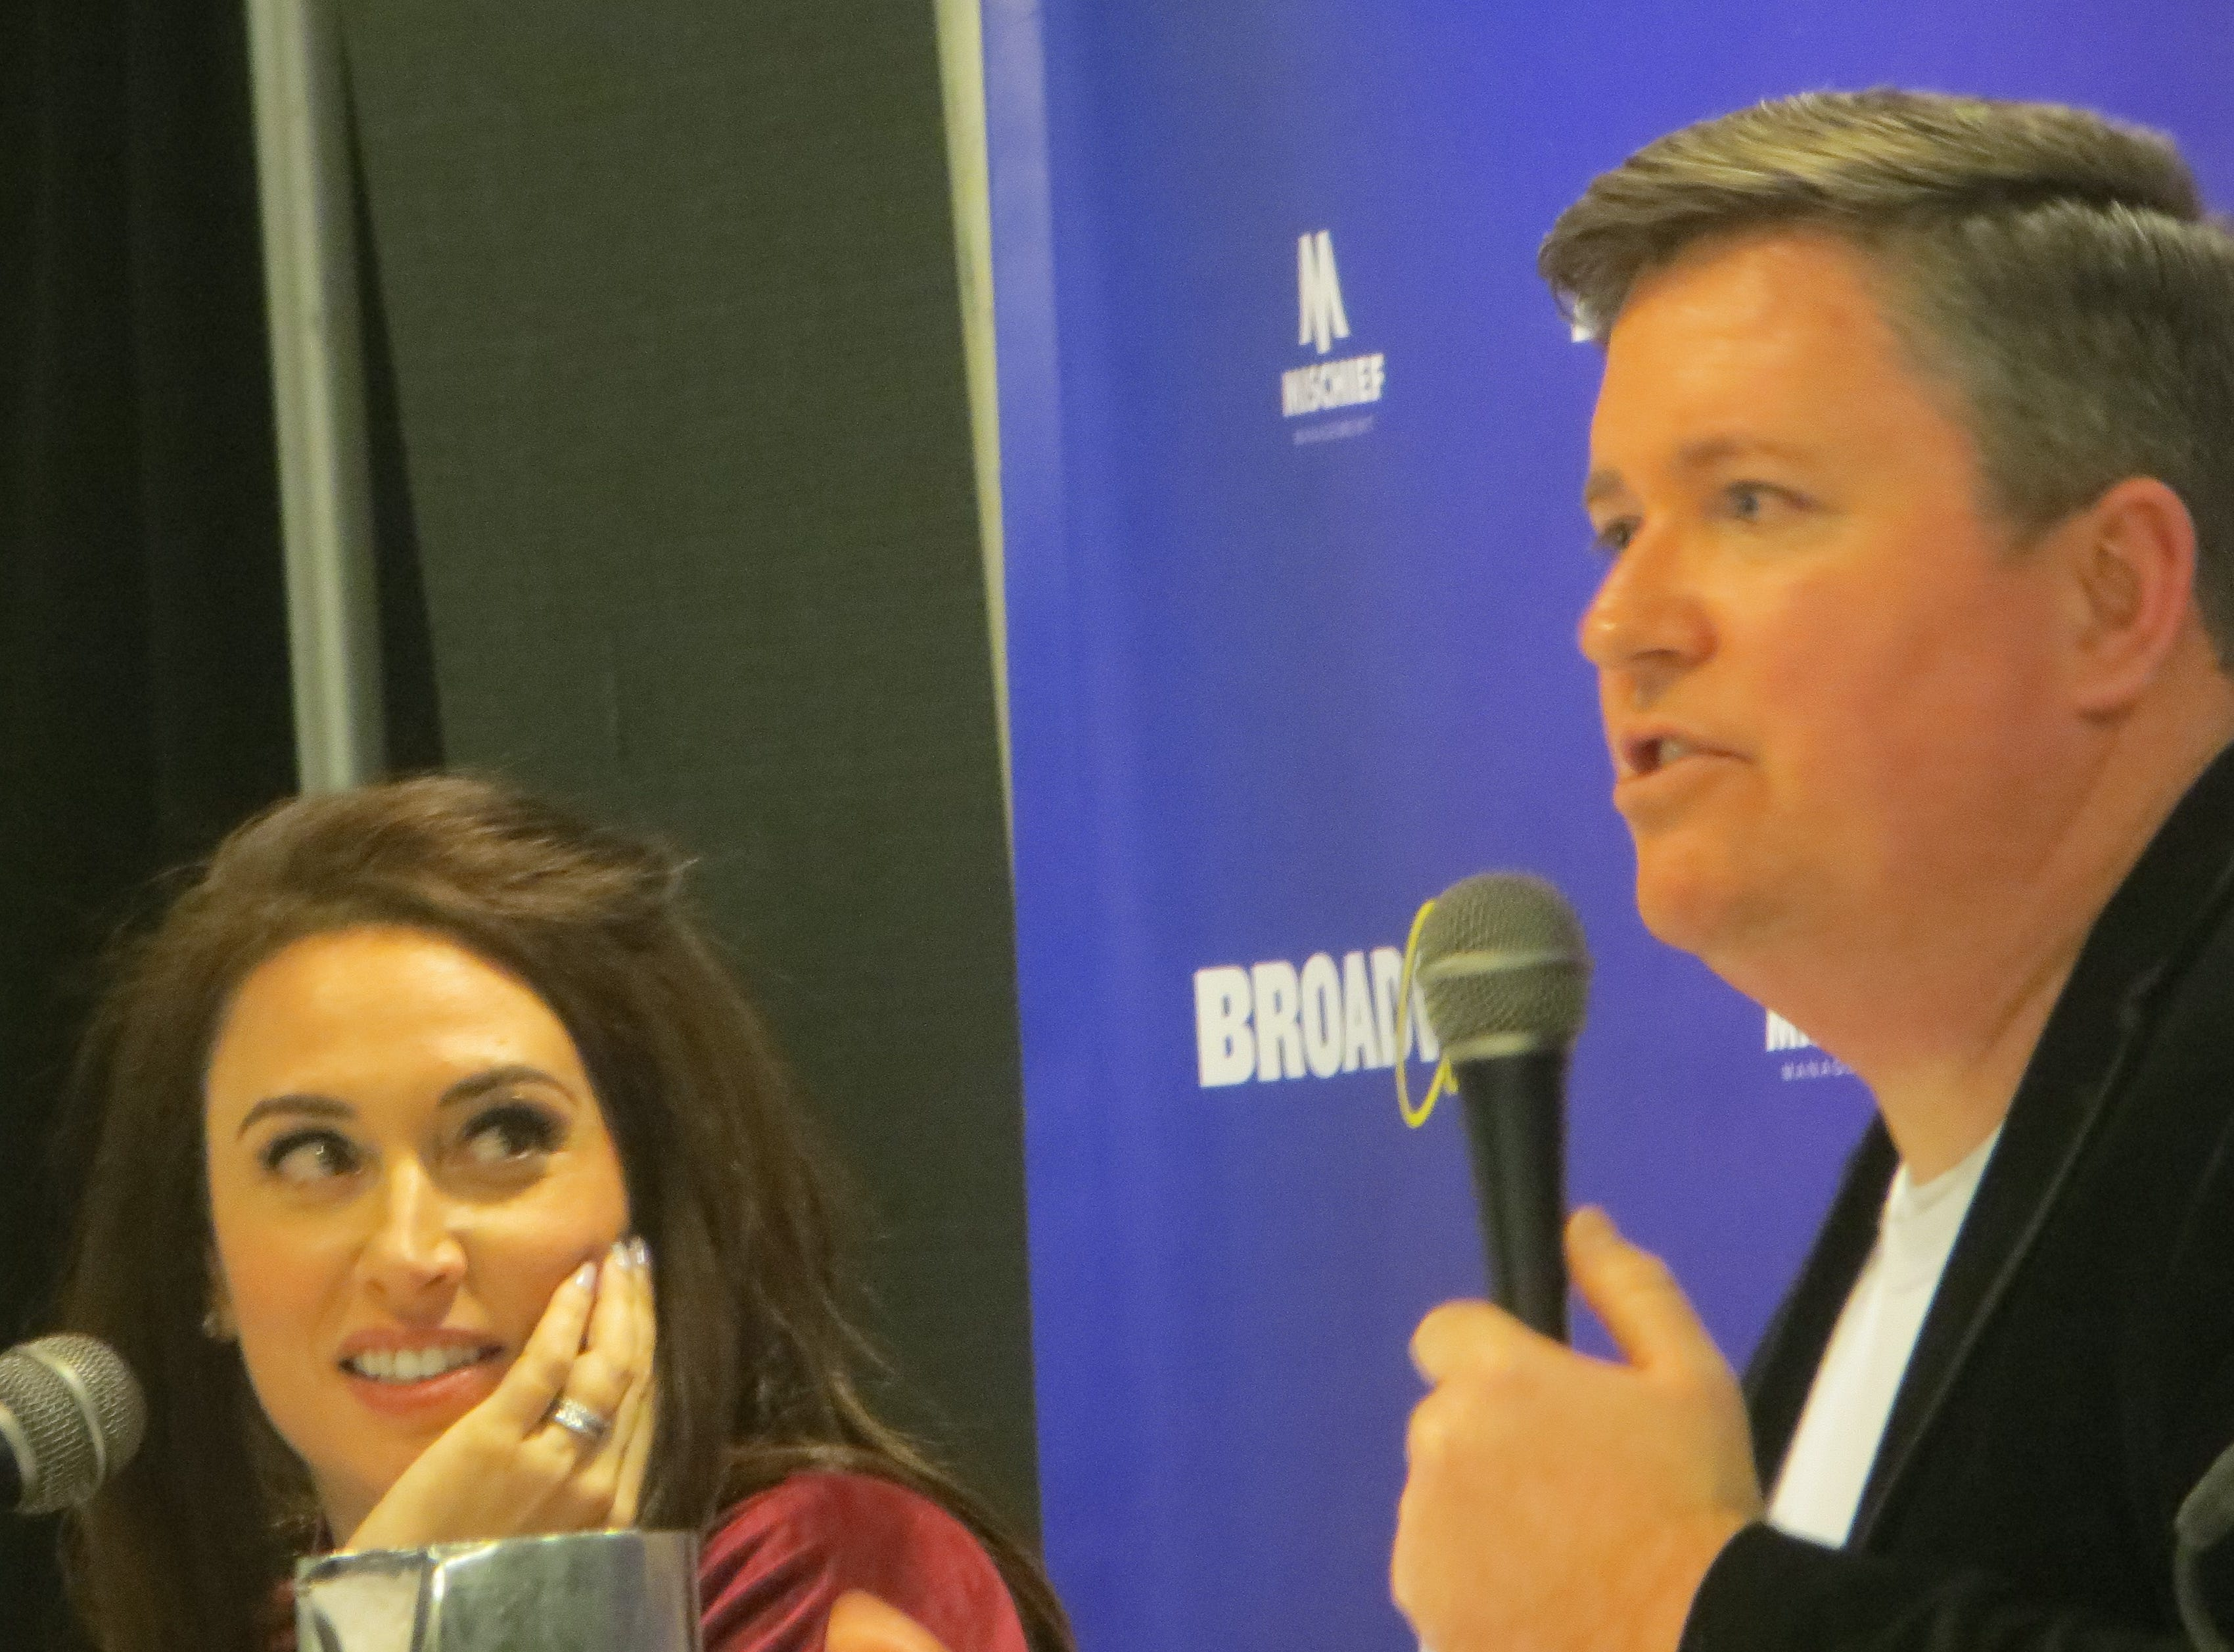 Lesli Margherita and Brian Reavey of Retreat to Broadway speak during at panel at BroadwayCon 2019, held Jan. 11 to 13, 2019, at the New York Hilton Midtown in Manhattan.